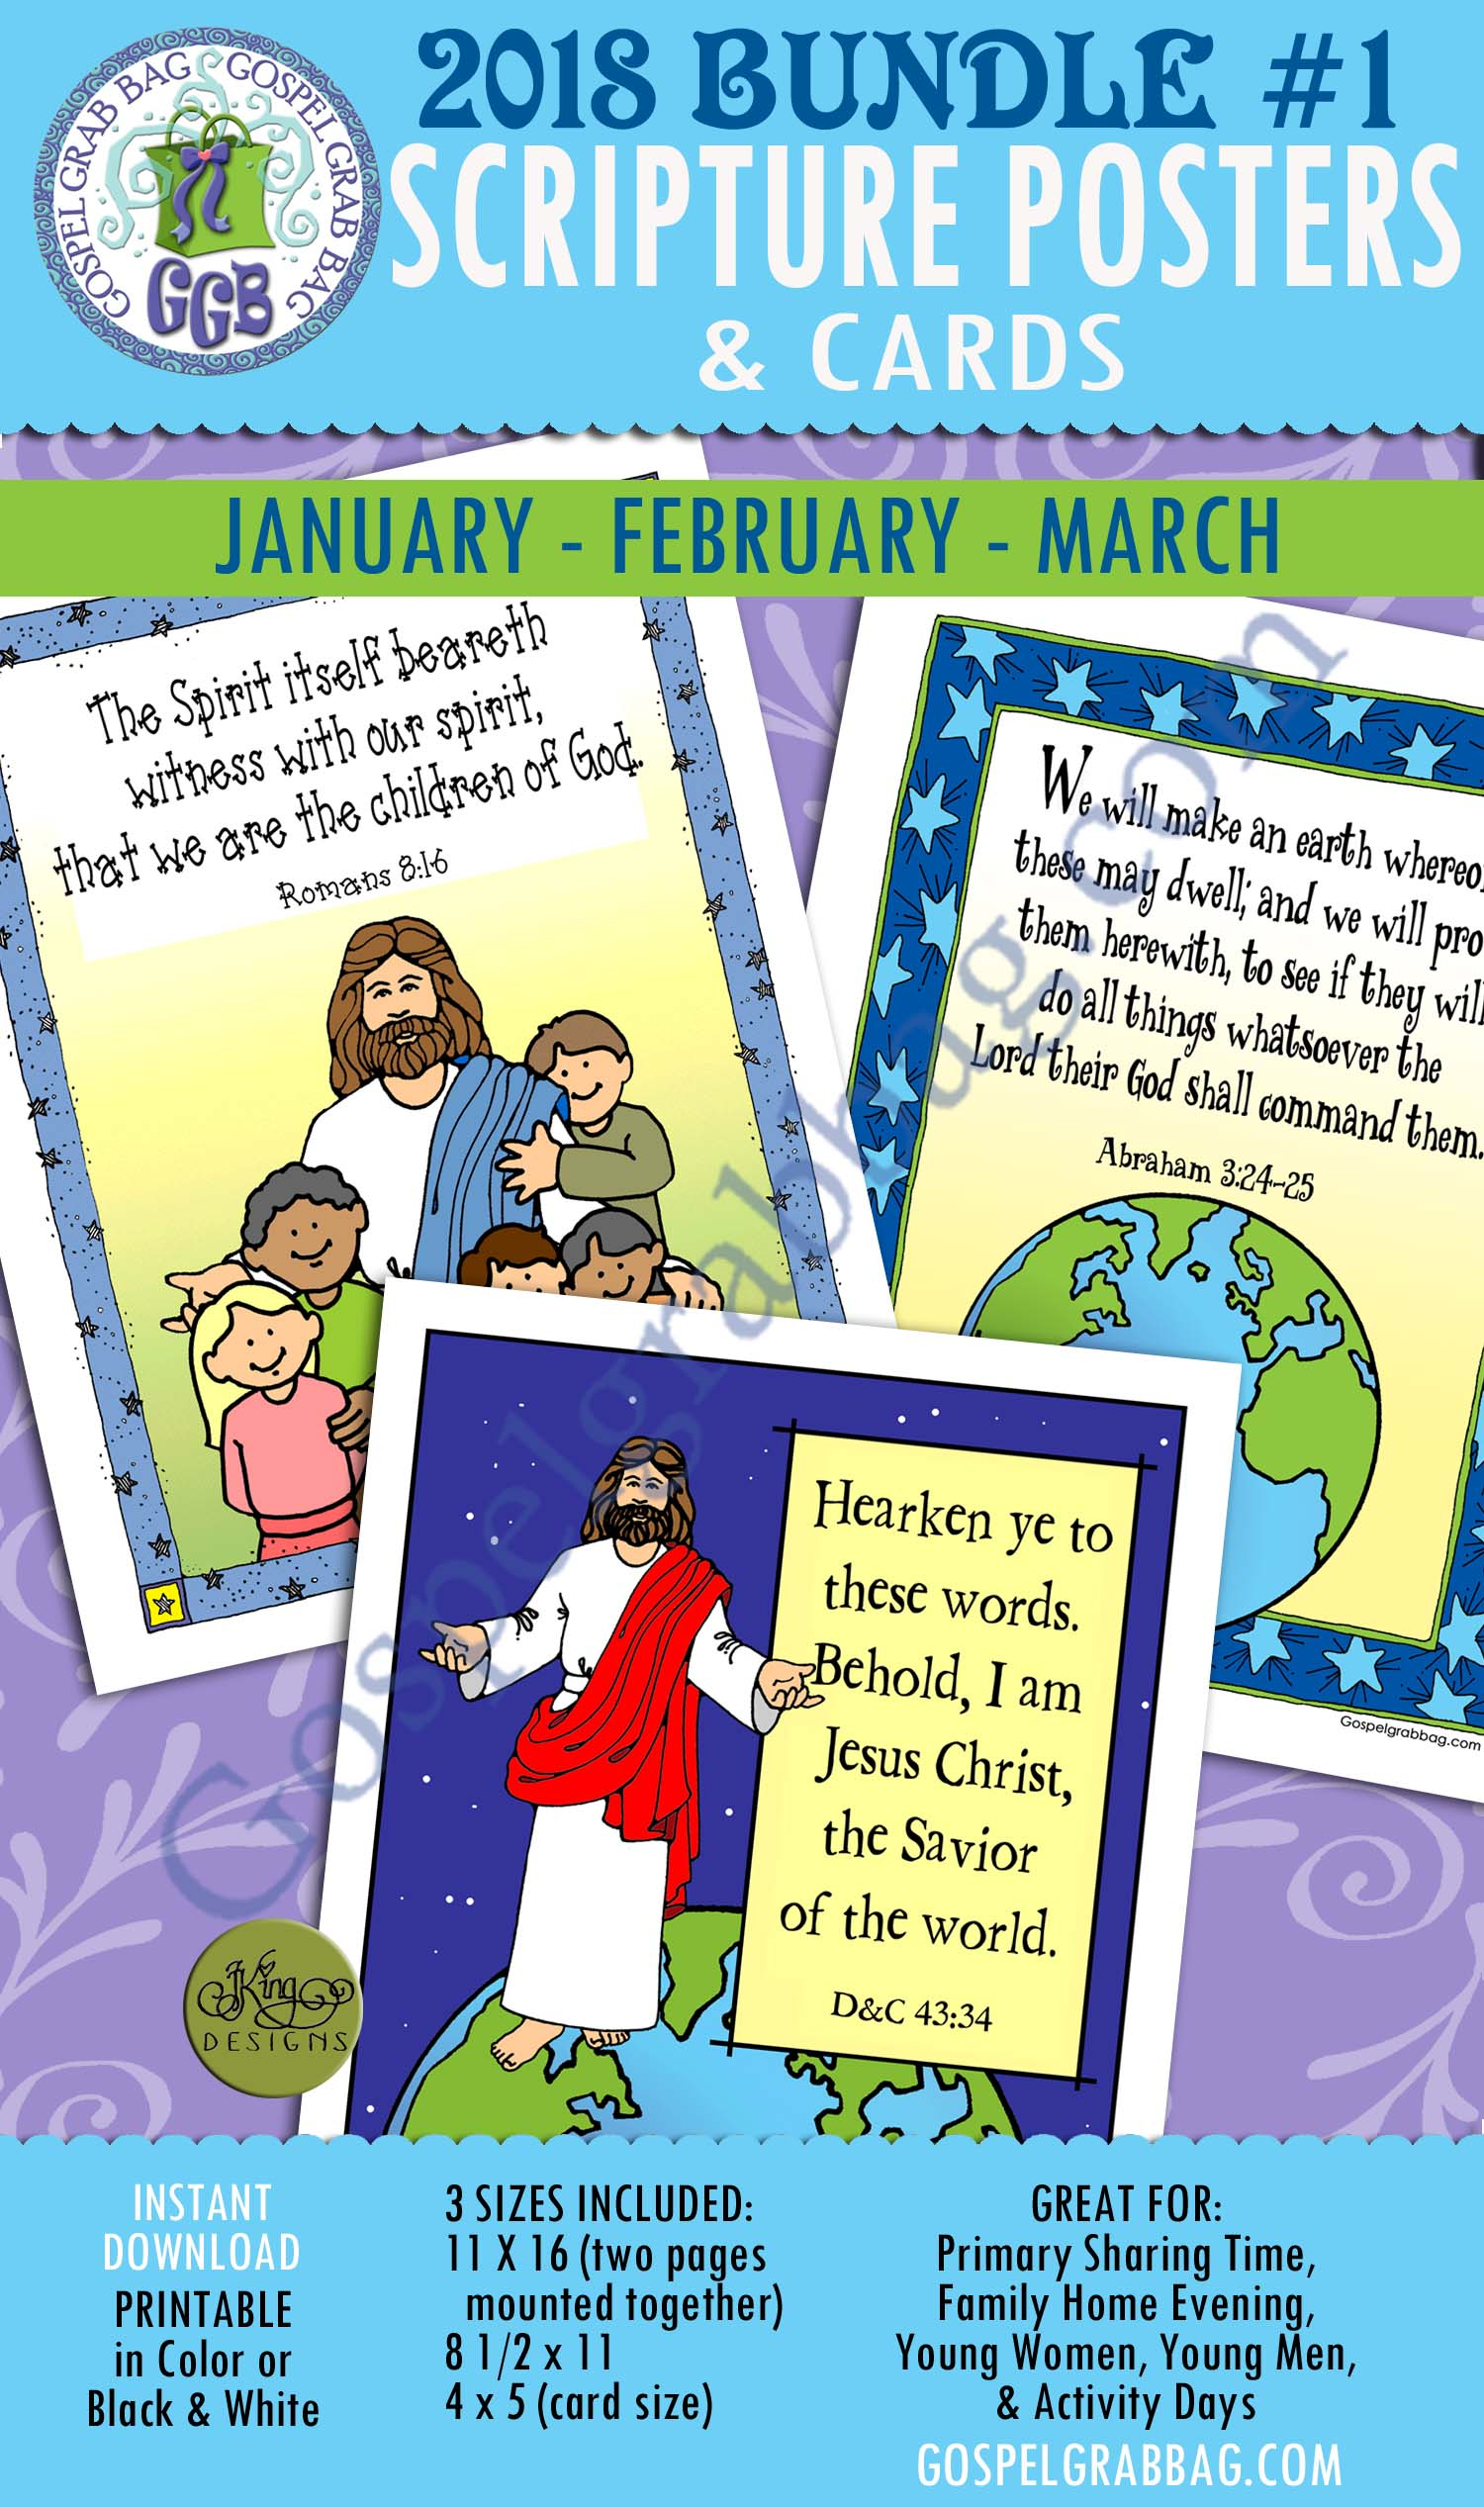 $4.00 Bundle #1 Scripture Posters & Cards: January - Romans 8:16; February - Abraham 3:24; March D&C 43:34 - INSTANT DOWNLOAD, GospelGrabBag.com, Primary Sharing Time